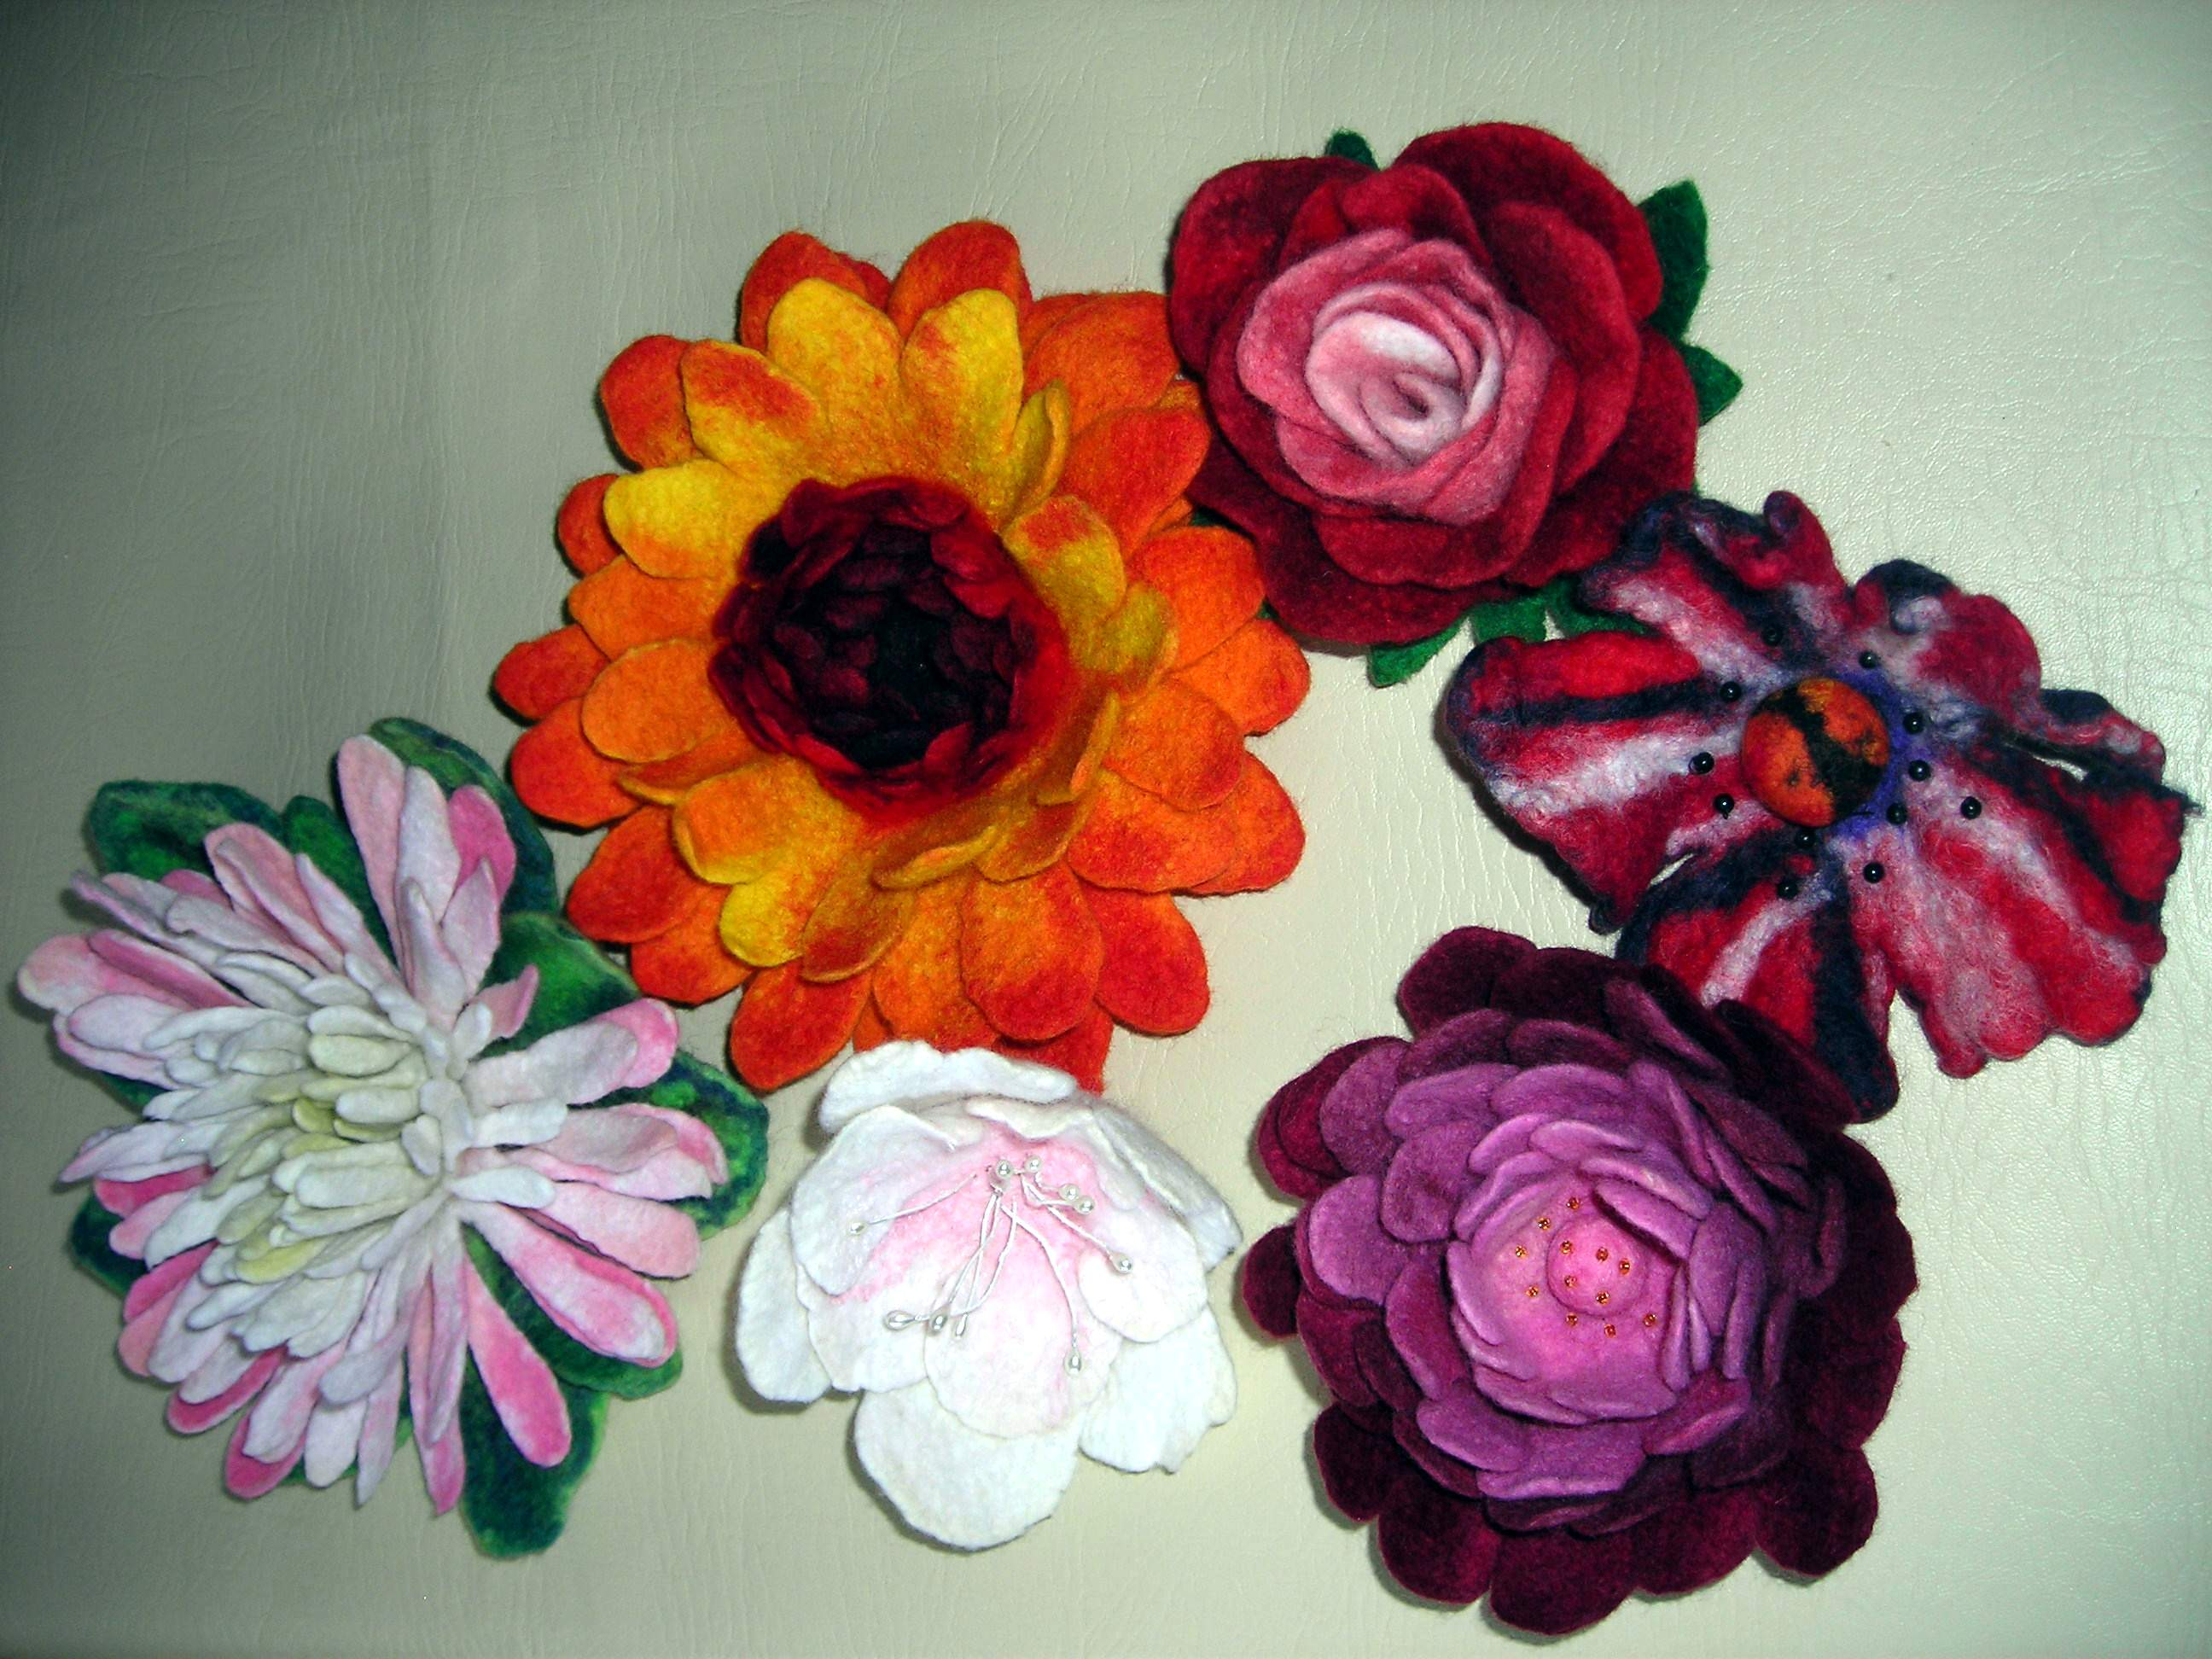 Handfelted flowers